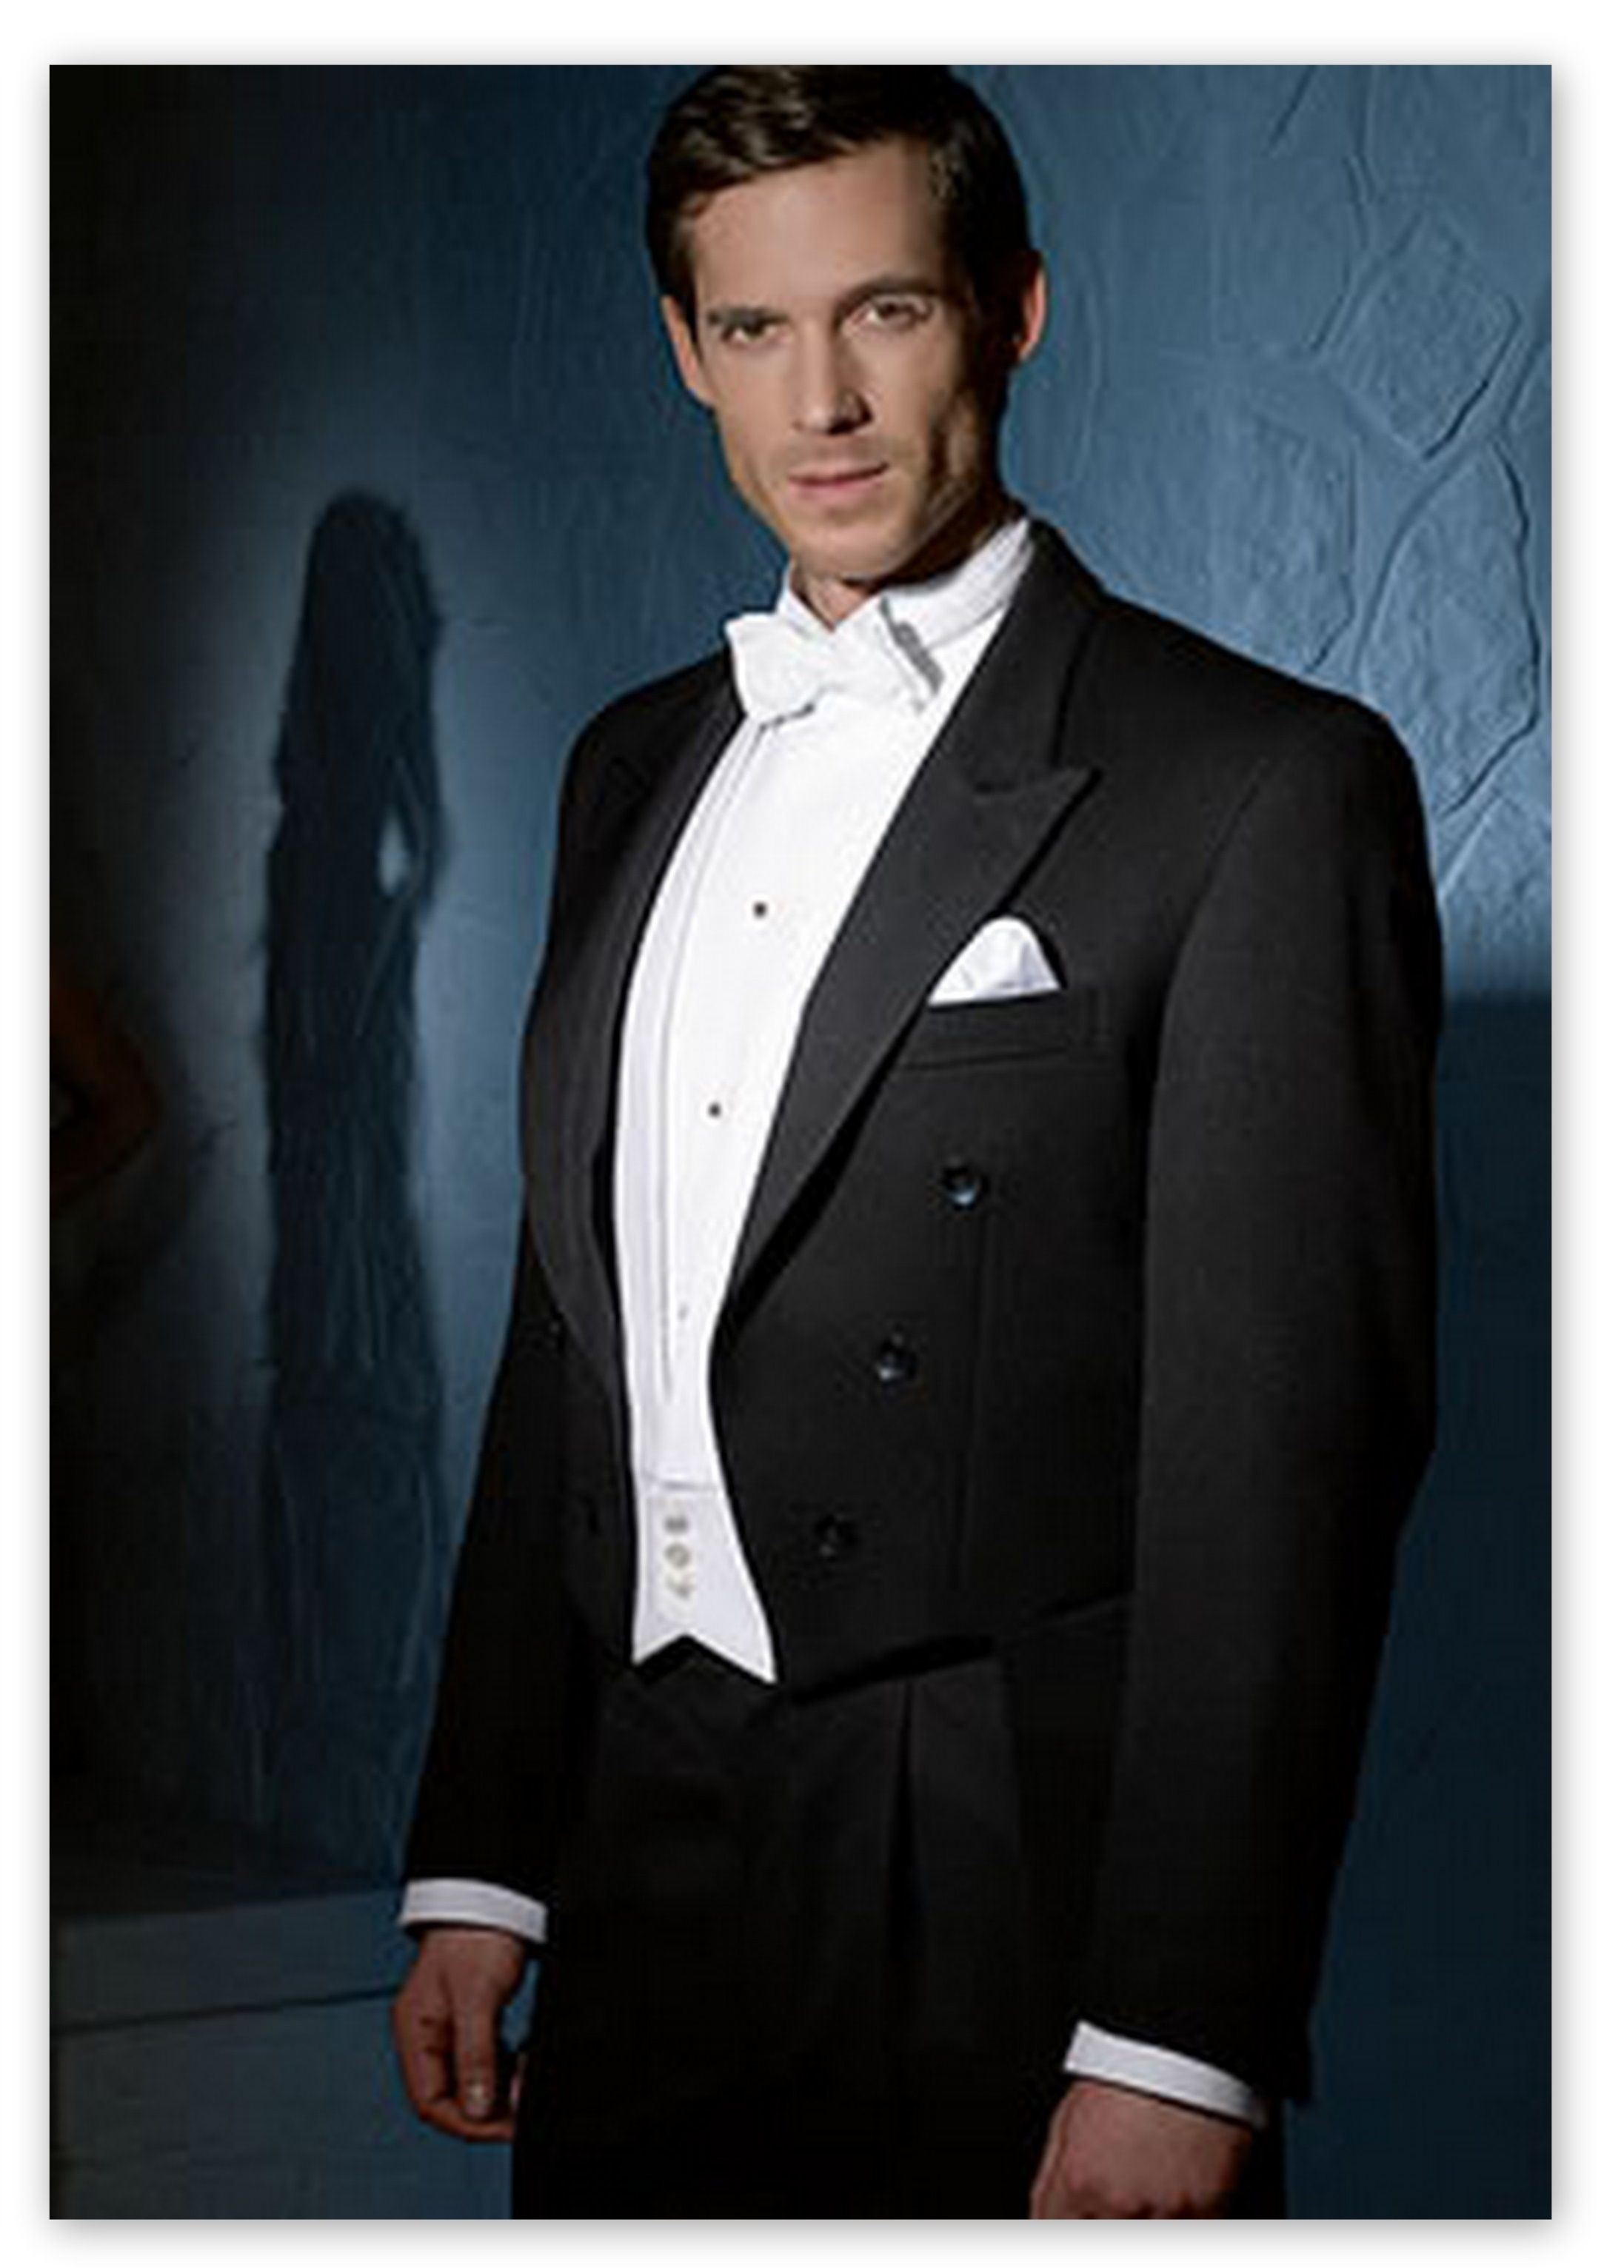 White Tie White Tie Pinterest Dapper And Dapper Dan